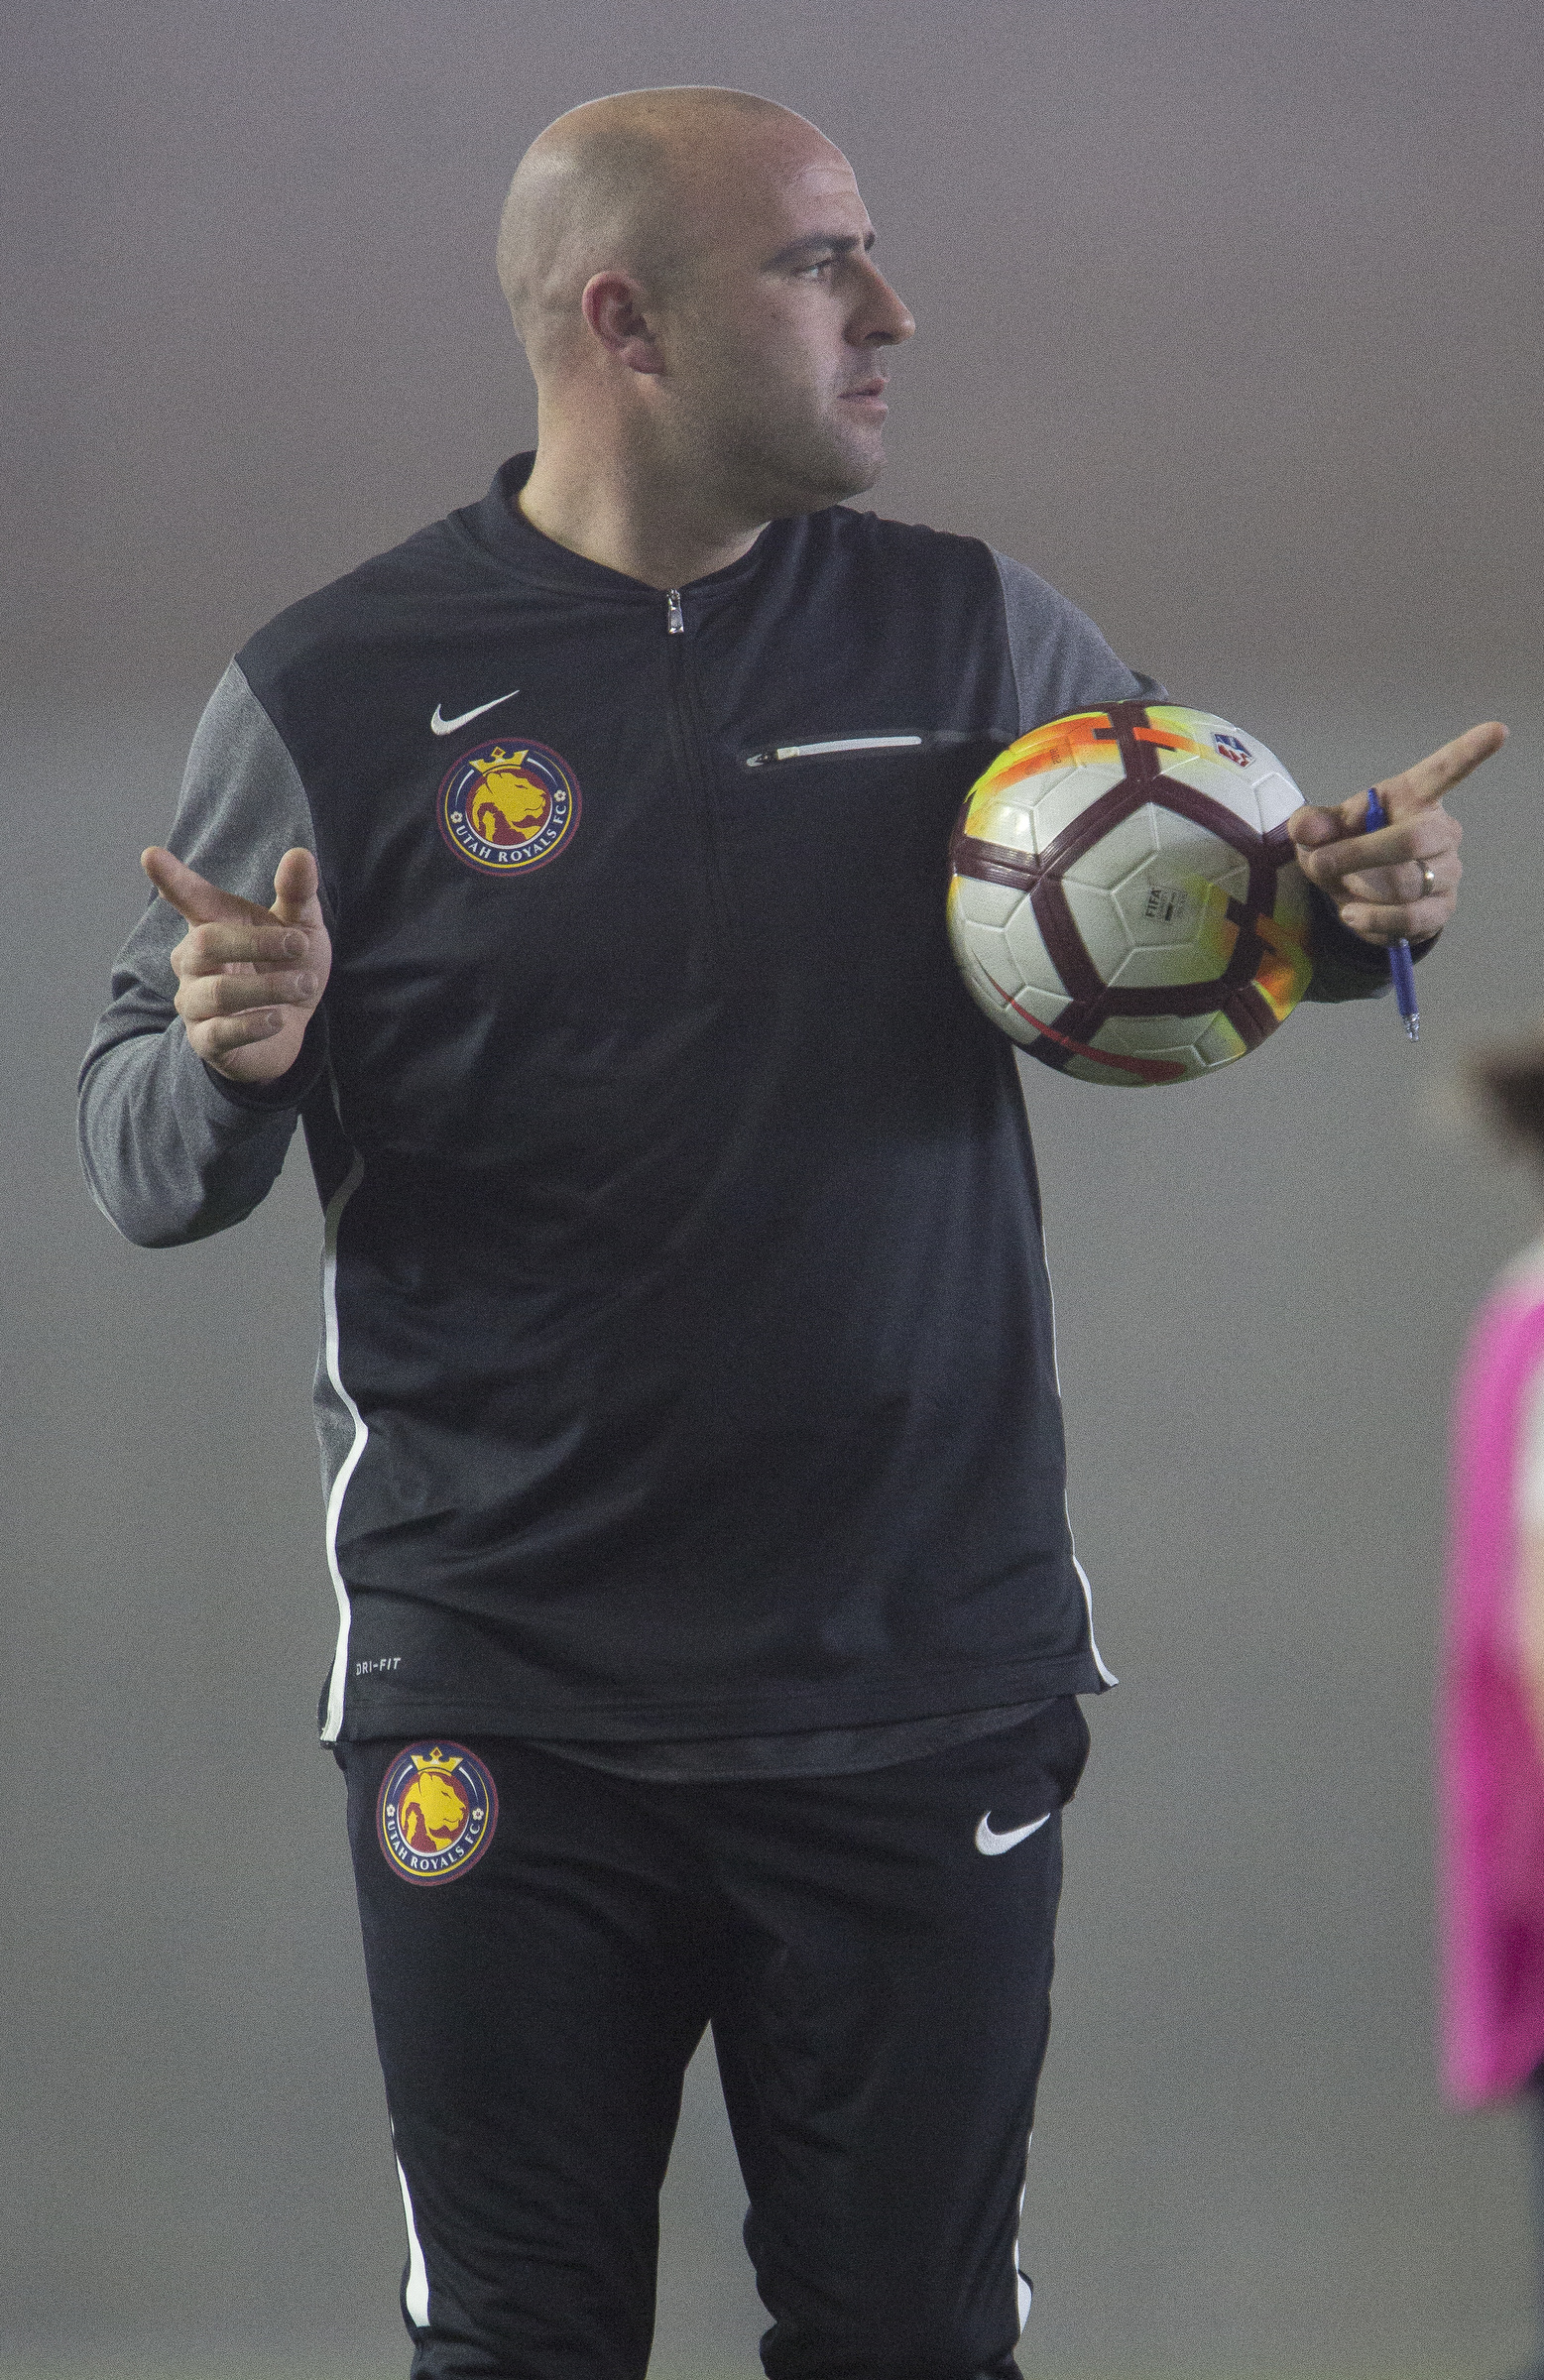 Royals' assistant coach Scott Parkinson speaks during the Utah Royals FC's practice at the Zions Bank Real Academy Training Center in Herriman on Thursday, Feb. 22, 2018.